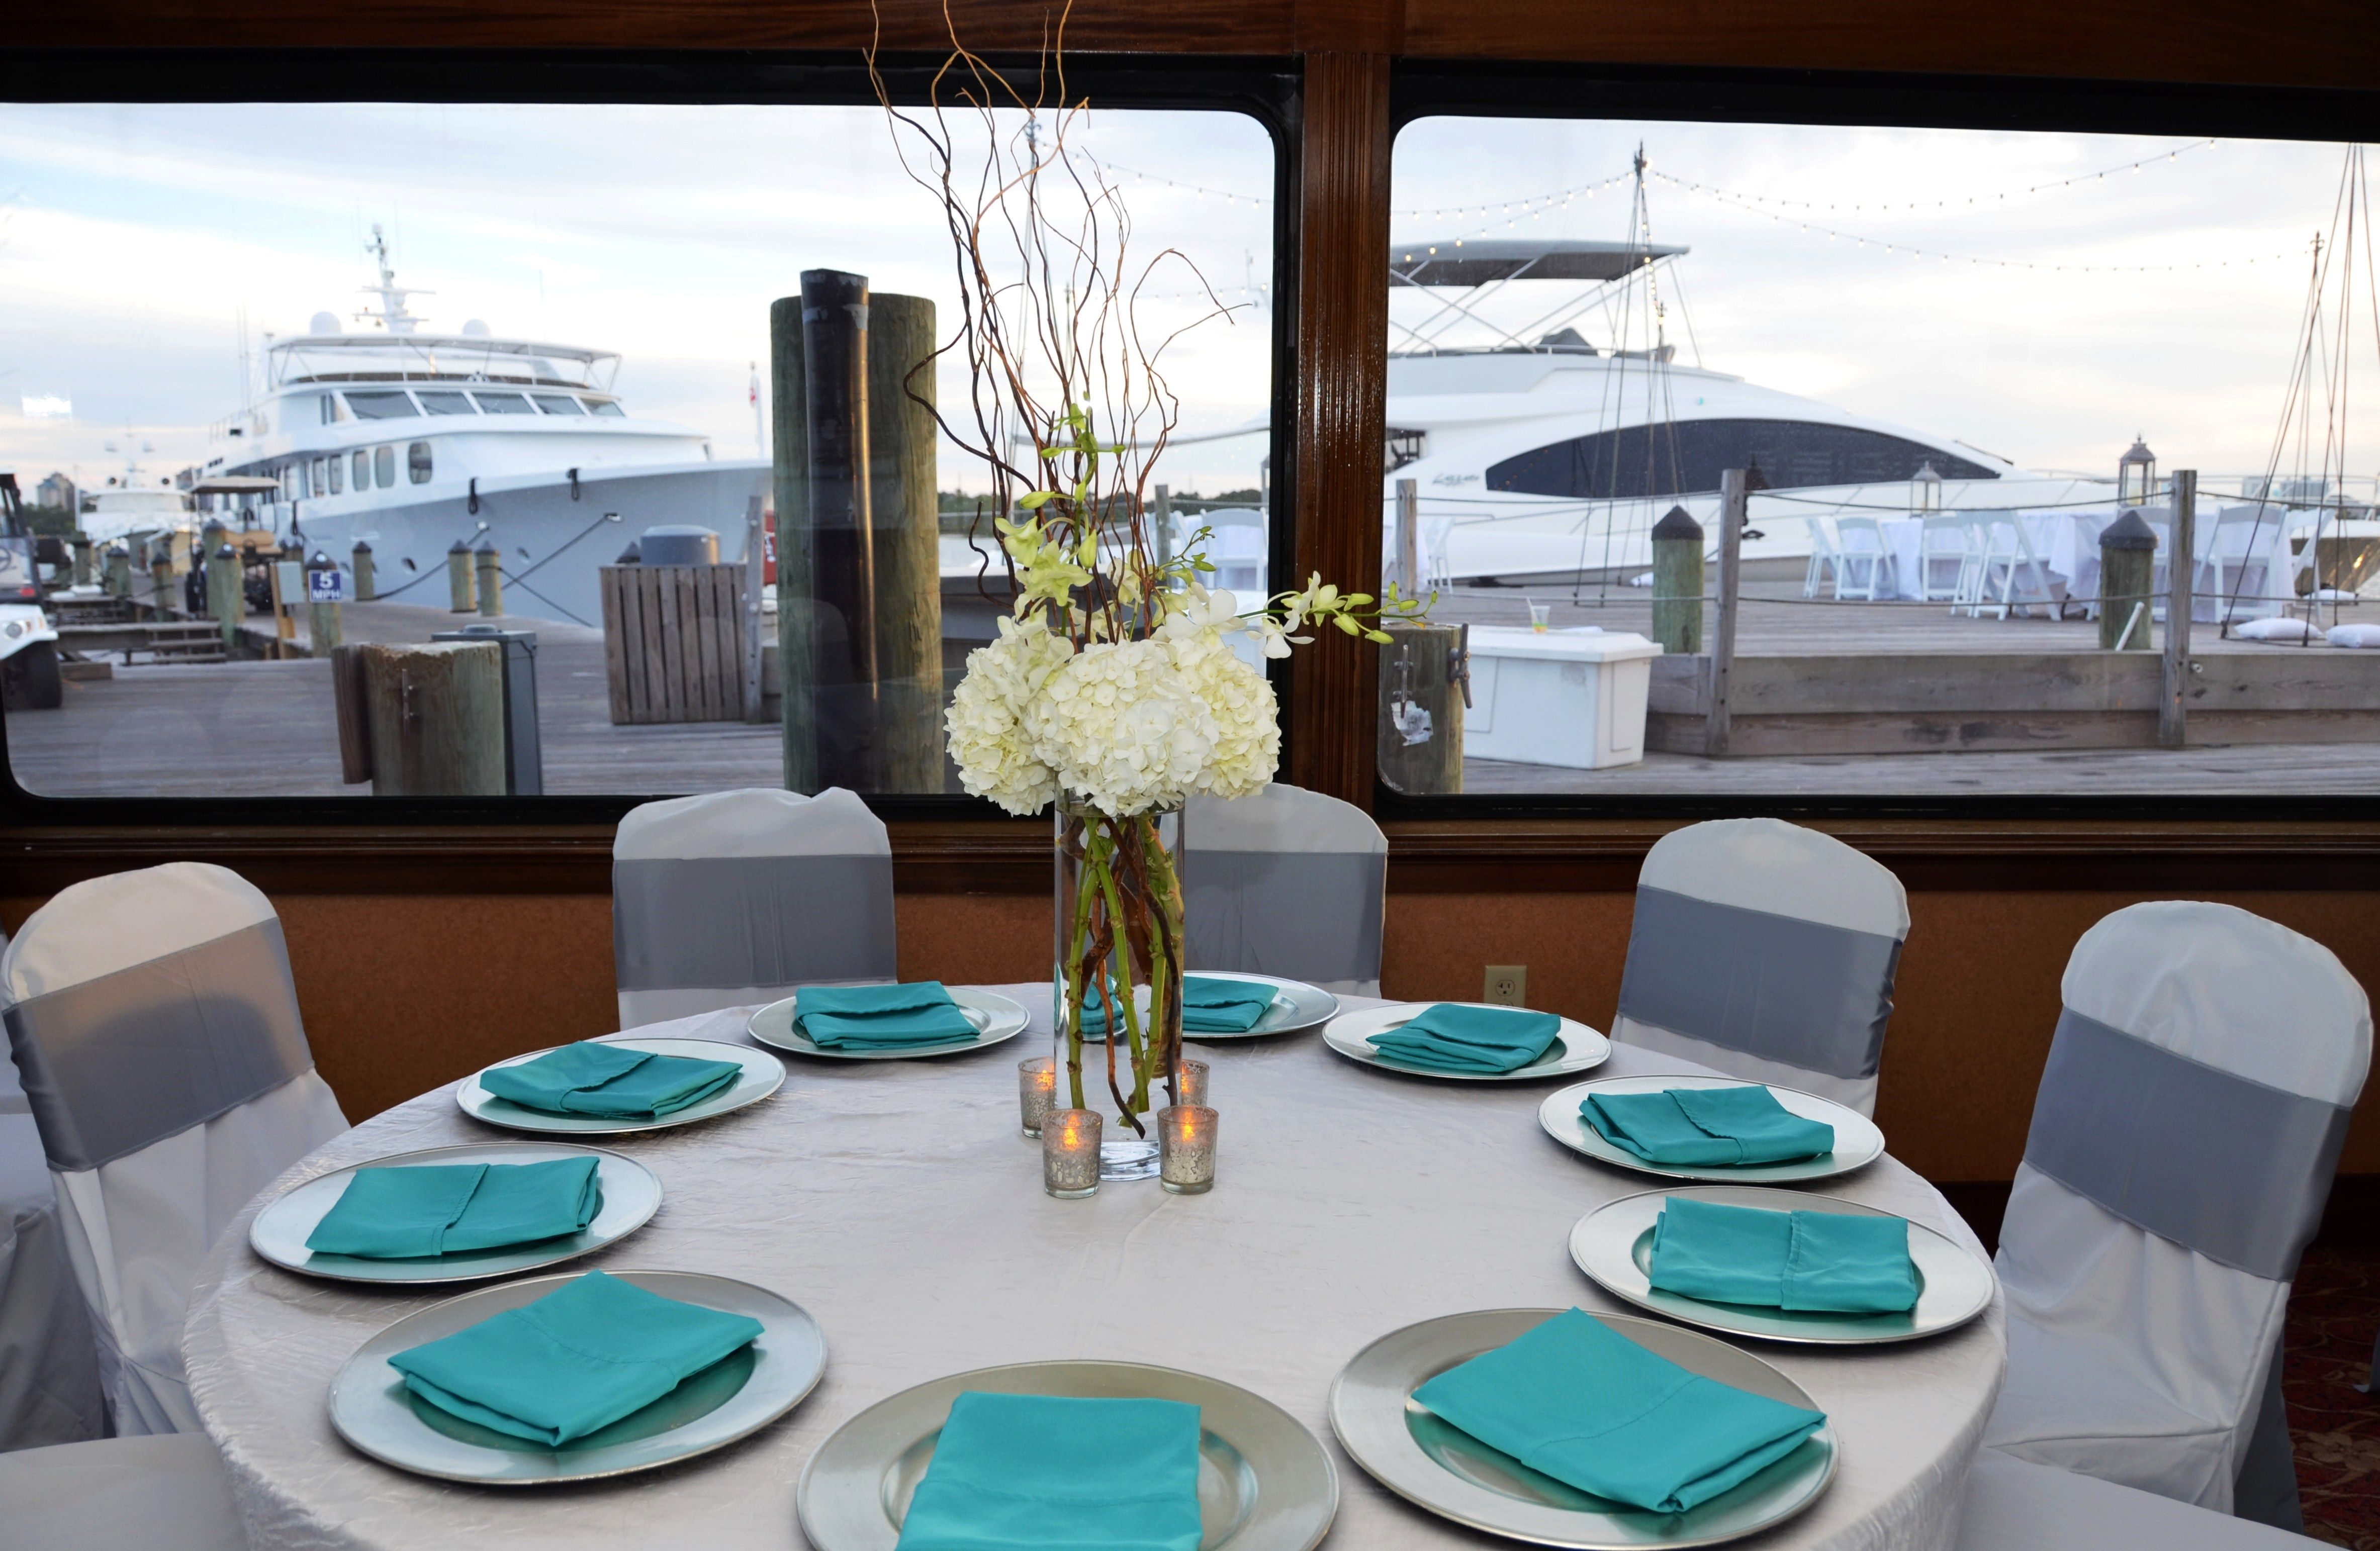 Our Wedding Planners Discuss The Hottest Trends For 2014 How They Transcend Into Amazing Destin Weddings On SOLARIS Yacht